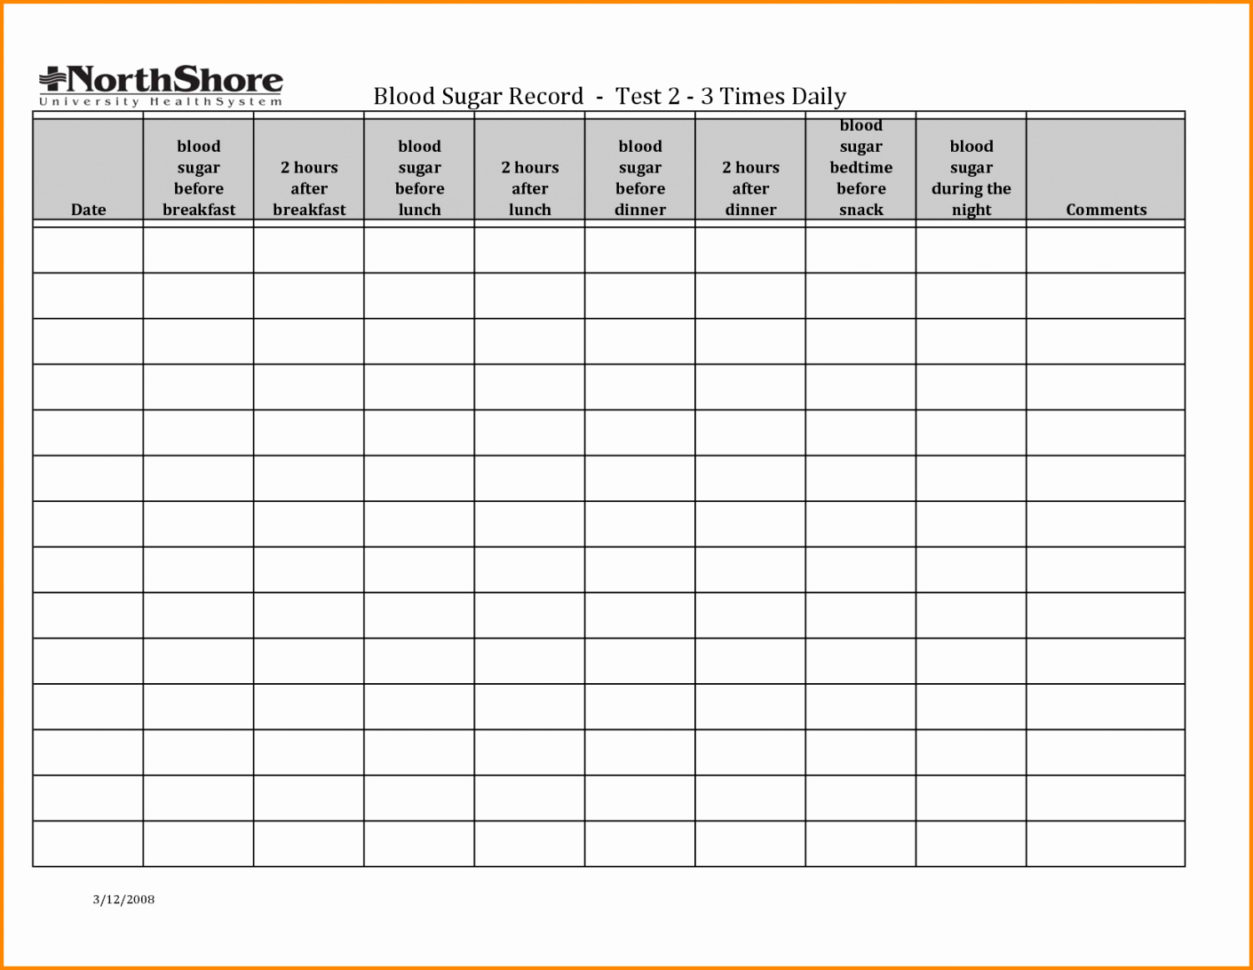 blood work spreadsheet diabetes blood test spreadsheet blood sugar test spreadsheet blood test spreadsheet template blood test excel spreadsheet  Blood Test Spreadsheet Throughout Blood Sugar Spreadsheet For Blood Sugareadsheet Log Diabetes Glucose Blood Test Spreadsheet 1 Printable Spreadshee